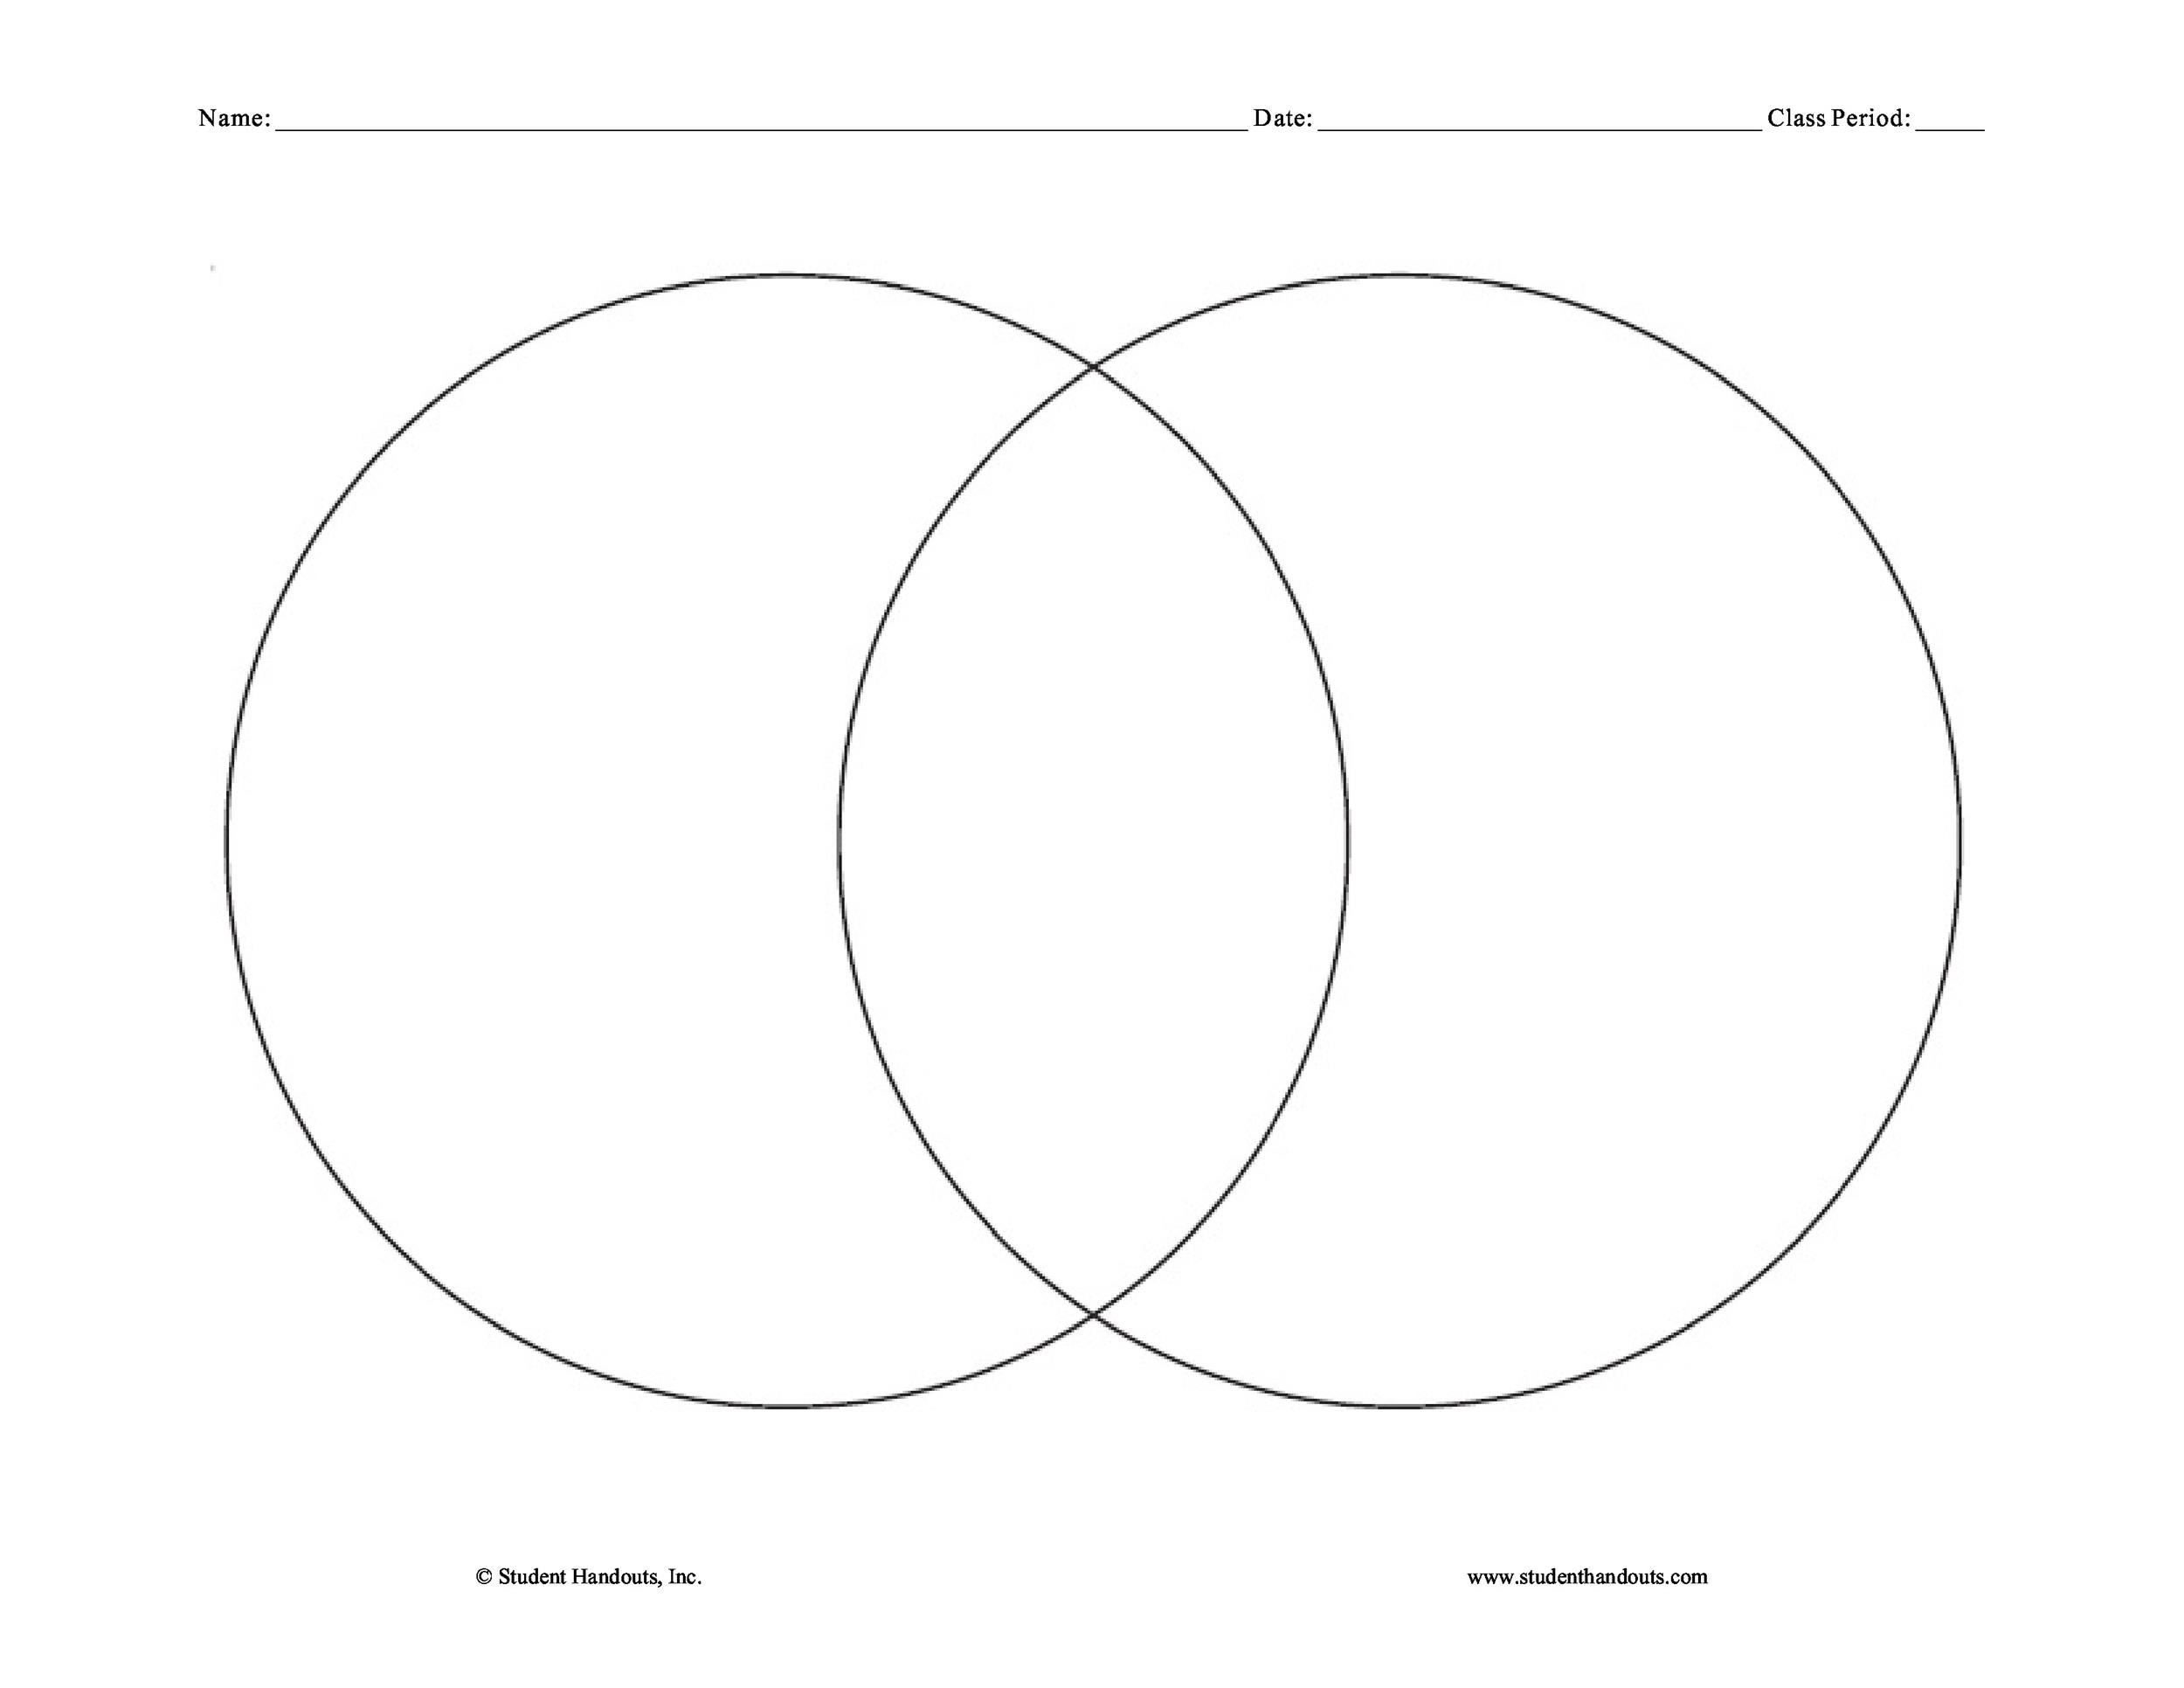 40+ Free Venn Diagram Templates (Word, Pdf) - Template Lab